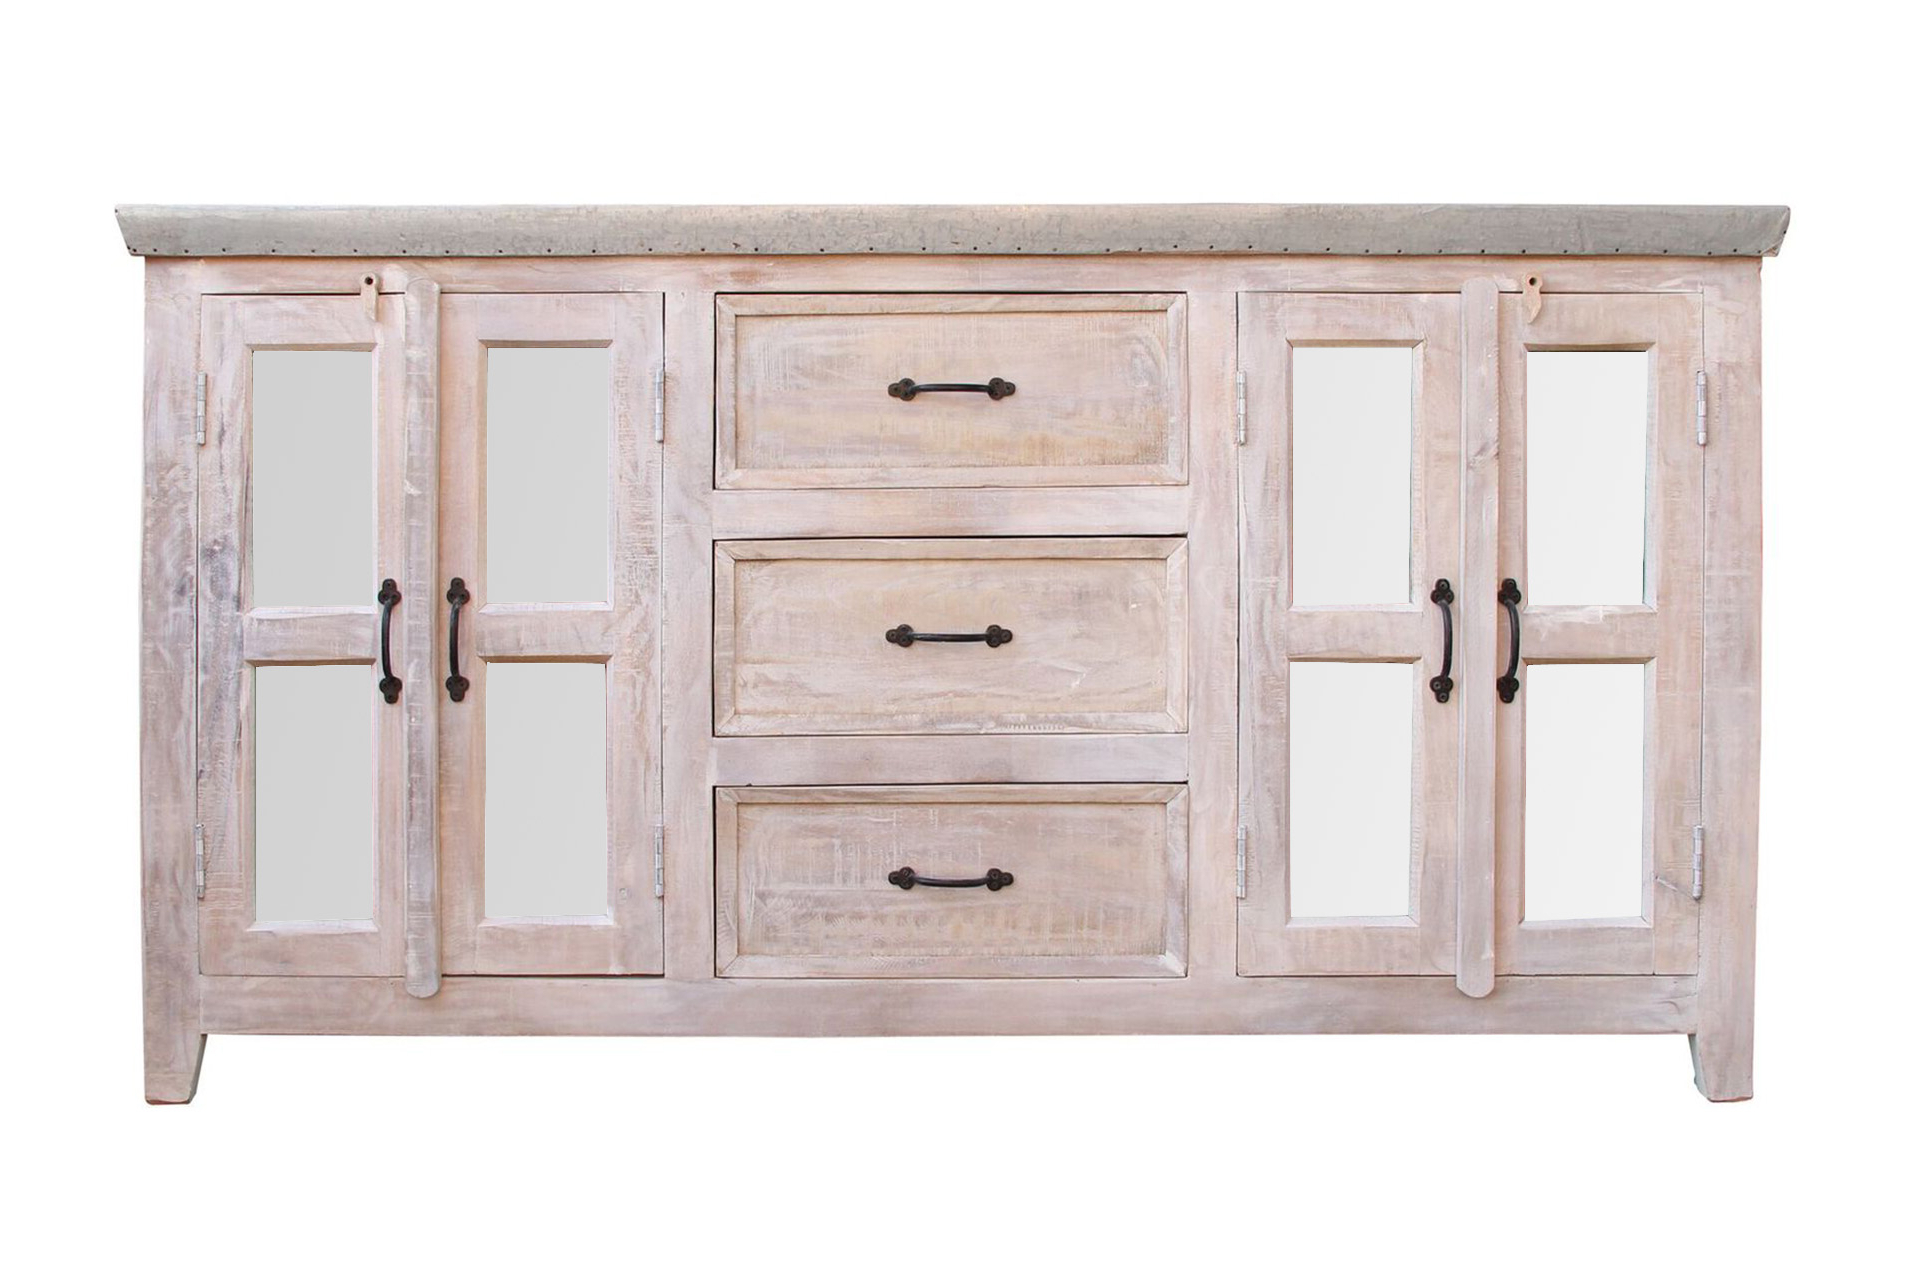 Widely Used White Wash 4 Door/3 Drawer Glass Sideboard Throughout White Wash 4 Door Sideboards (View 2 of 20)